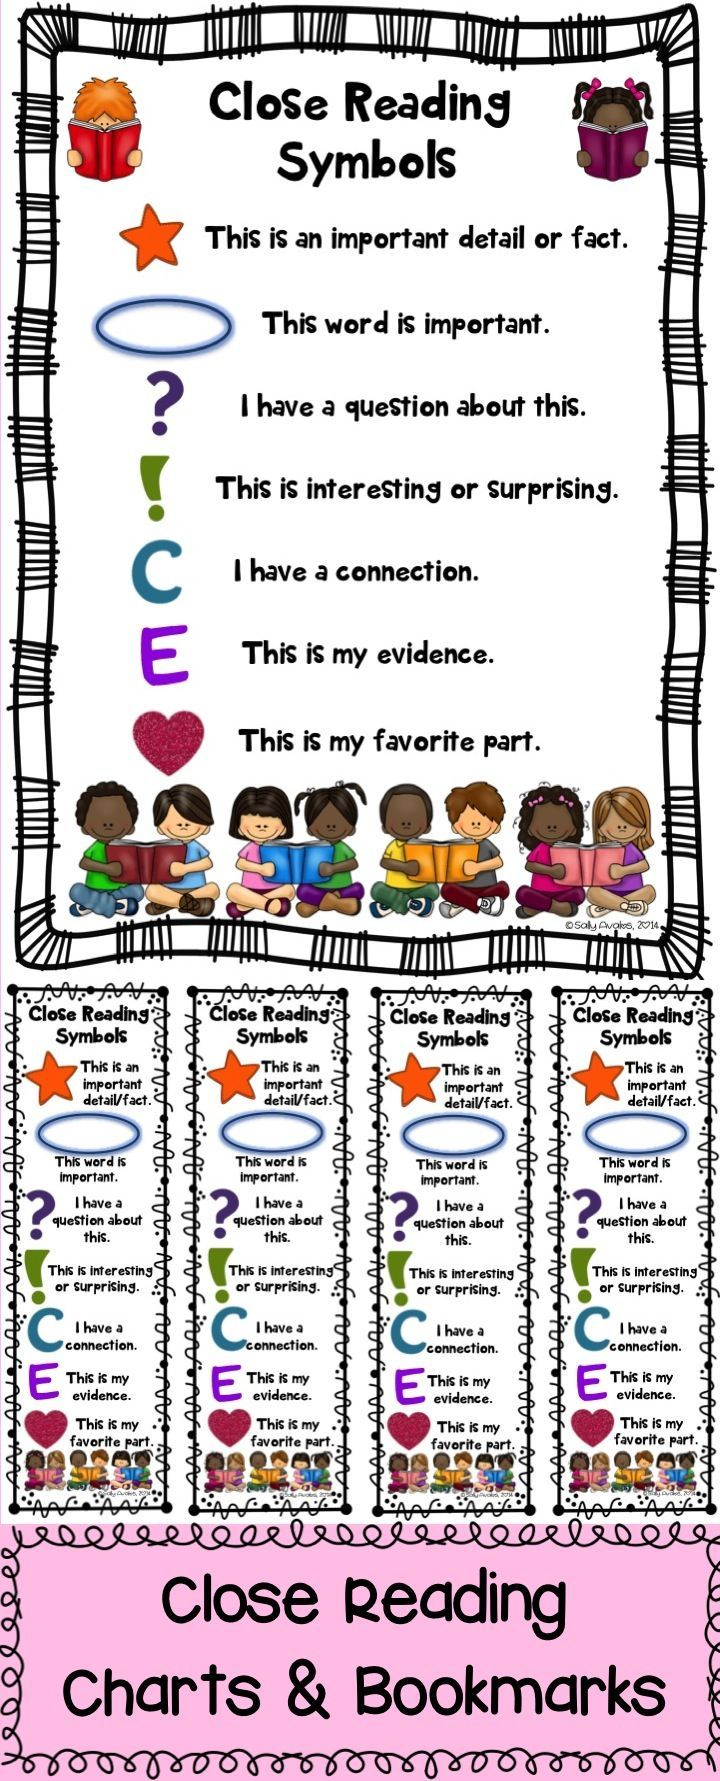 Close reading symbols posters bookmarks any topic easter these close reading symbol charts bookmarks are a must have during your close reading lessons biocorpaavc Images